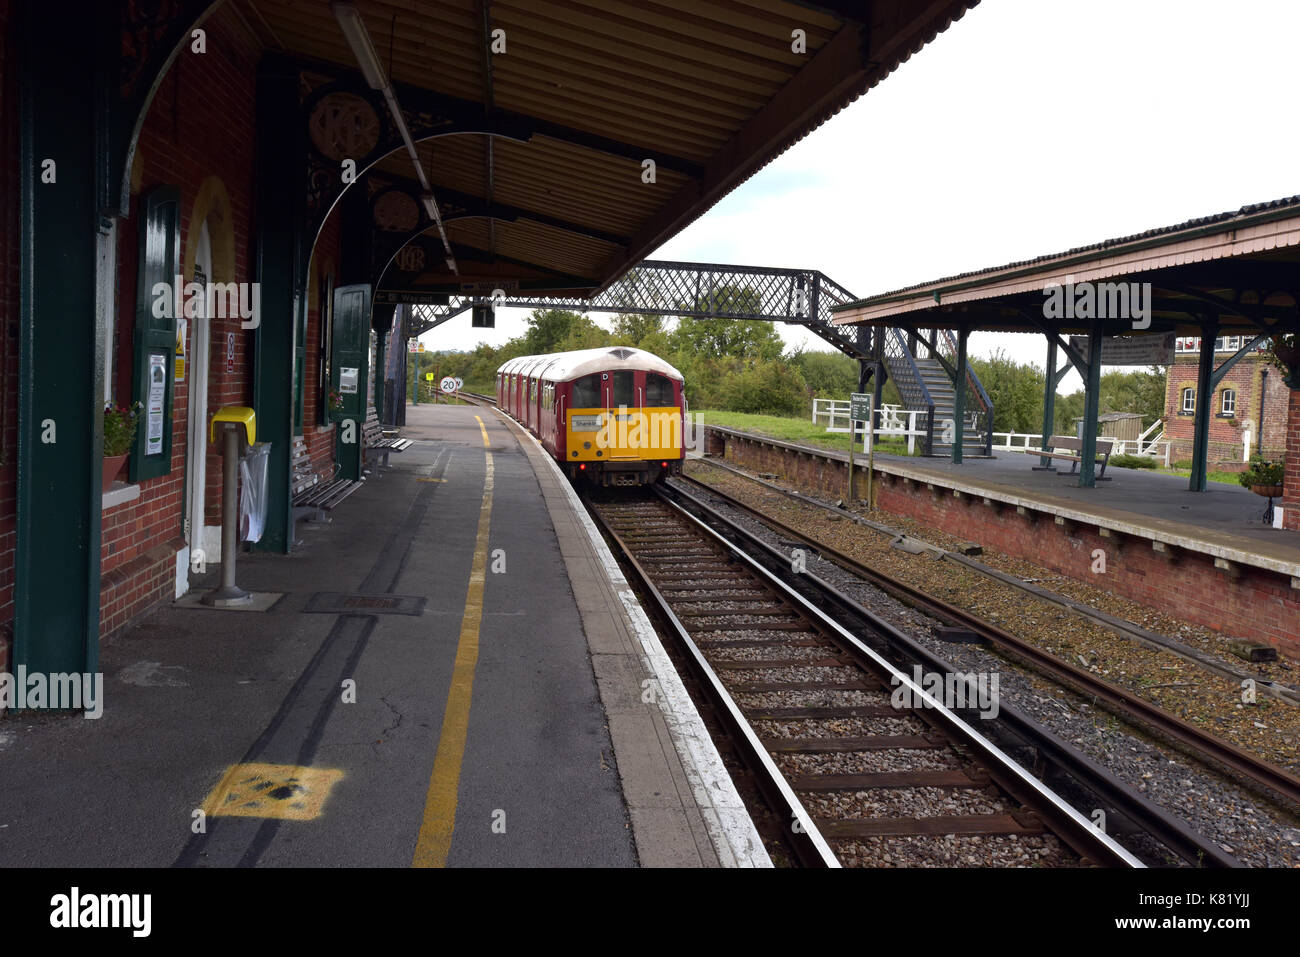 An island line main line railway train on the Isle of Wight uk using an old bakerloo line undergound train at brading Stock Photo